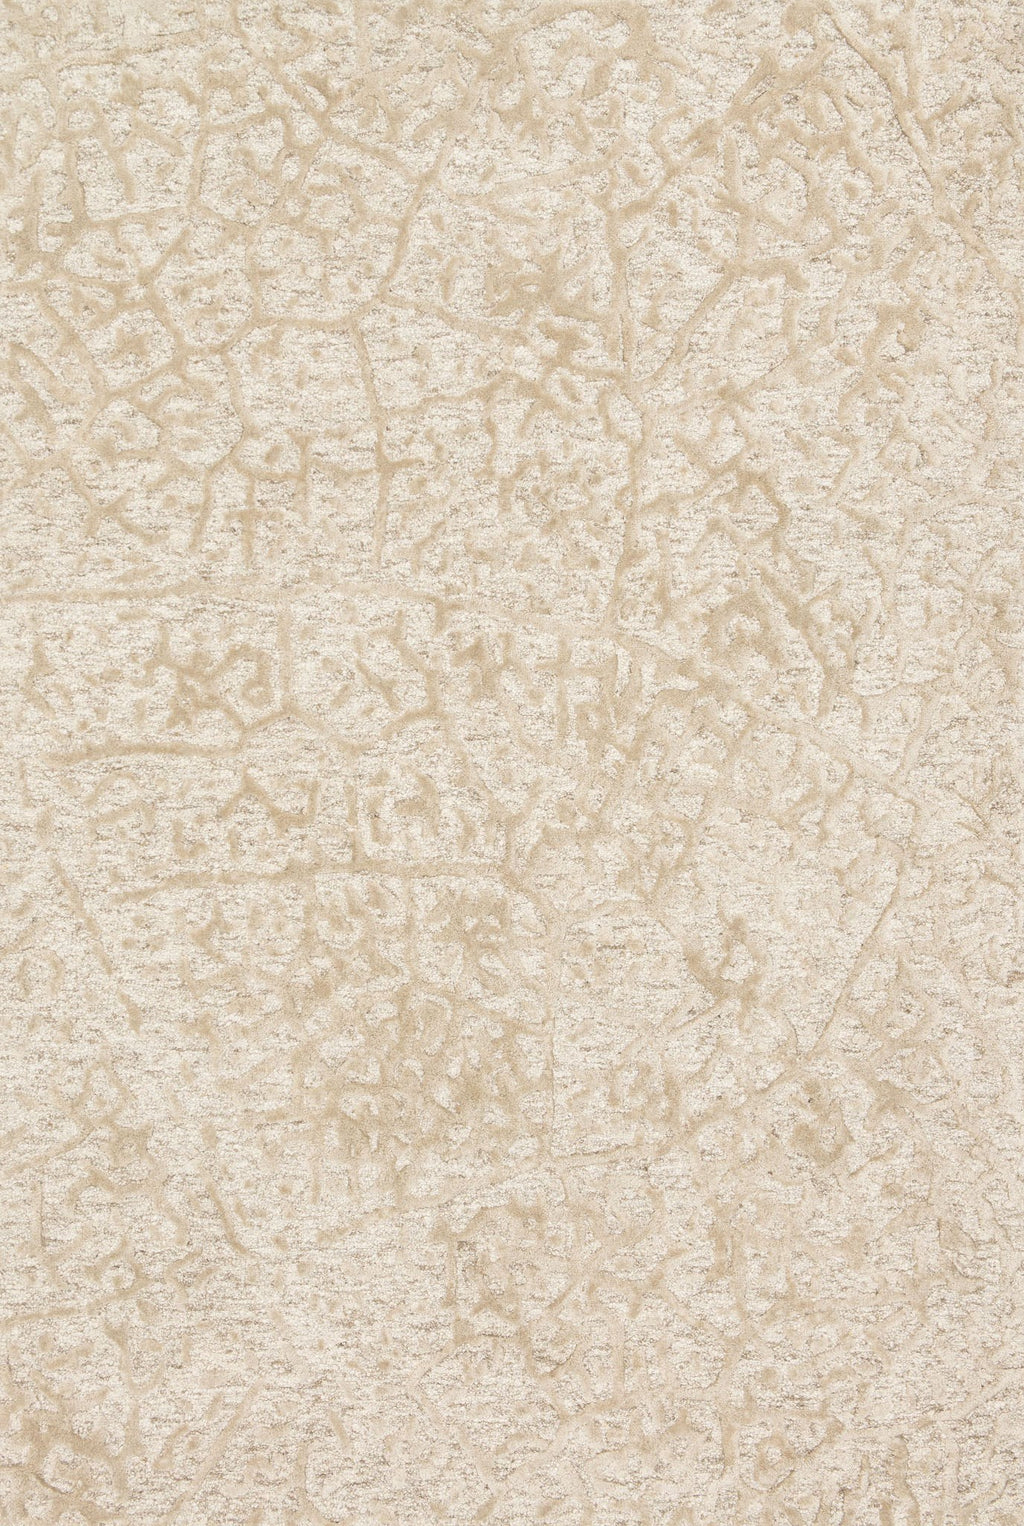 JUNEAU Collection Rug  in  ANT IVORY / BEIGE Beige Small Hand-Tufted Viscose